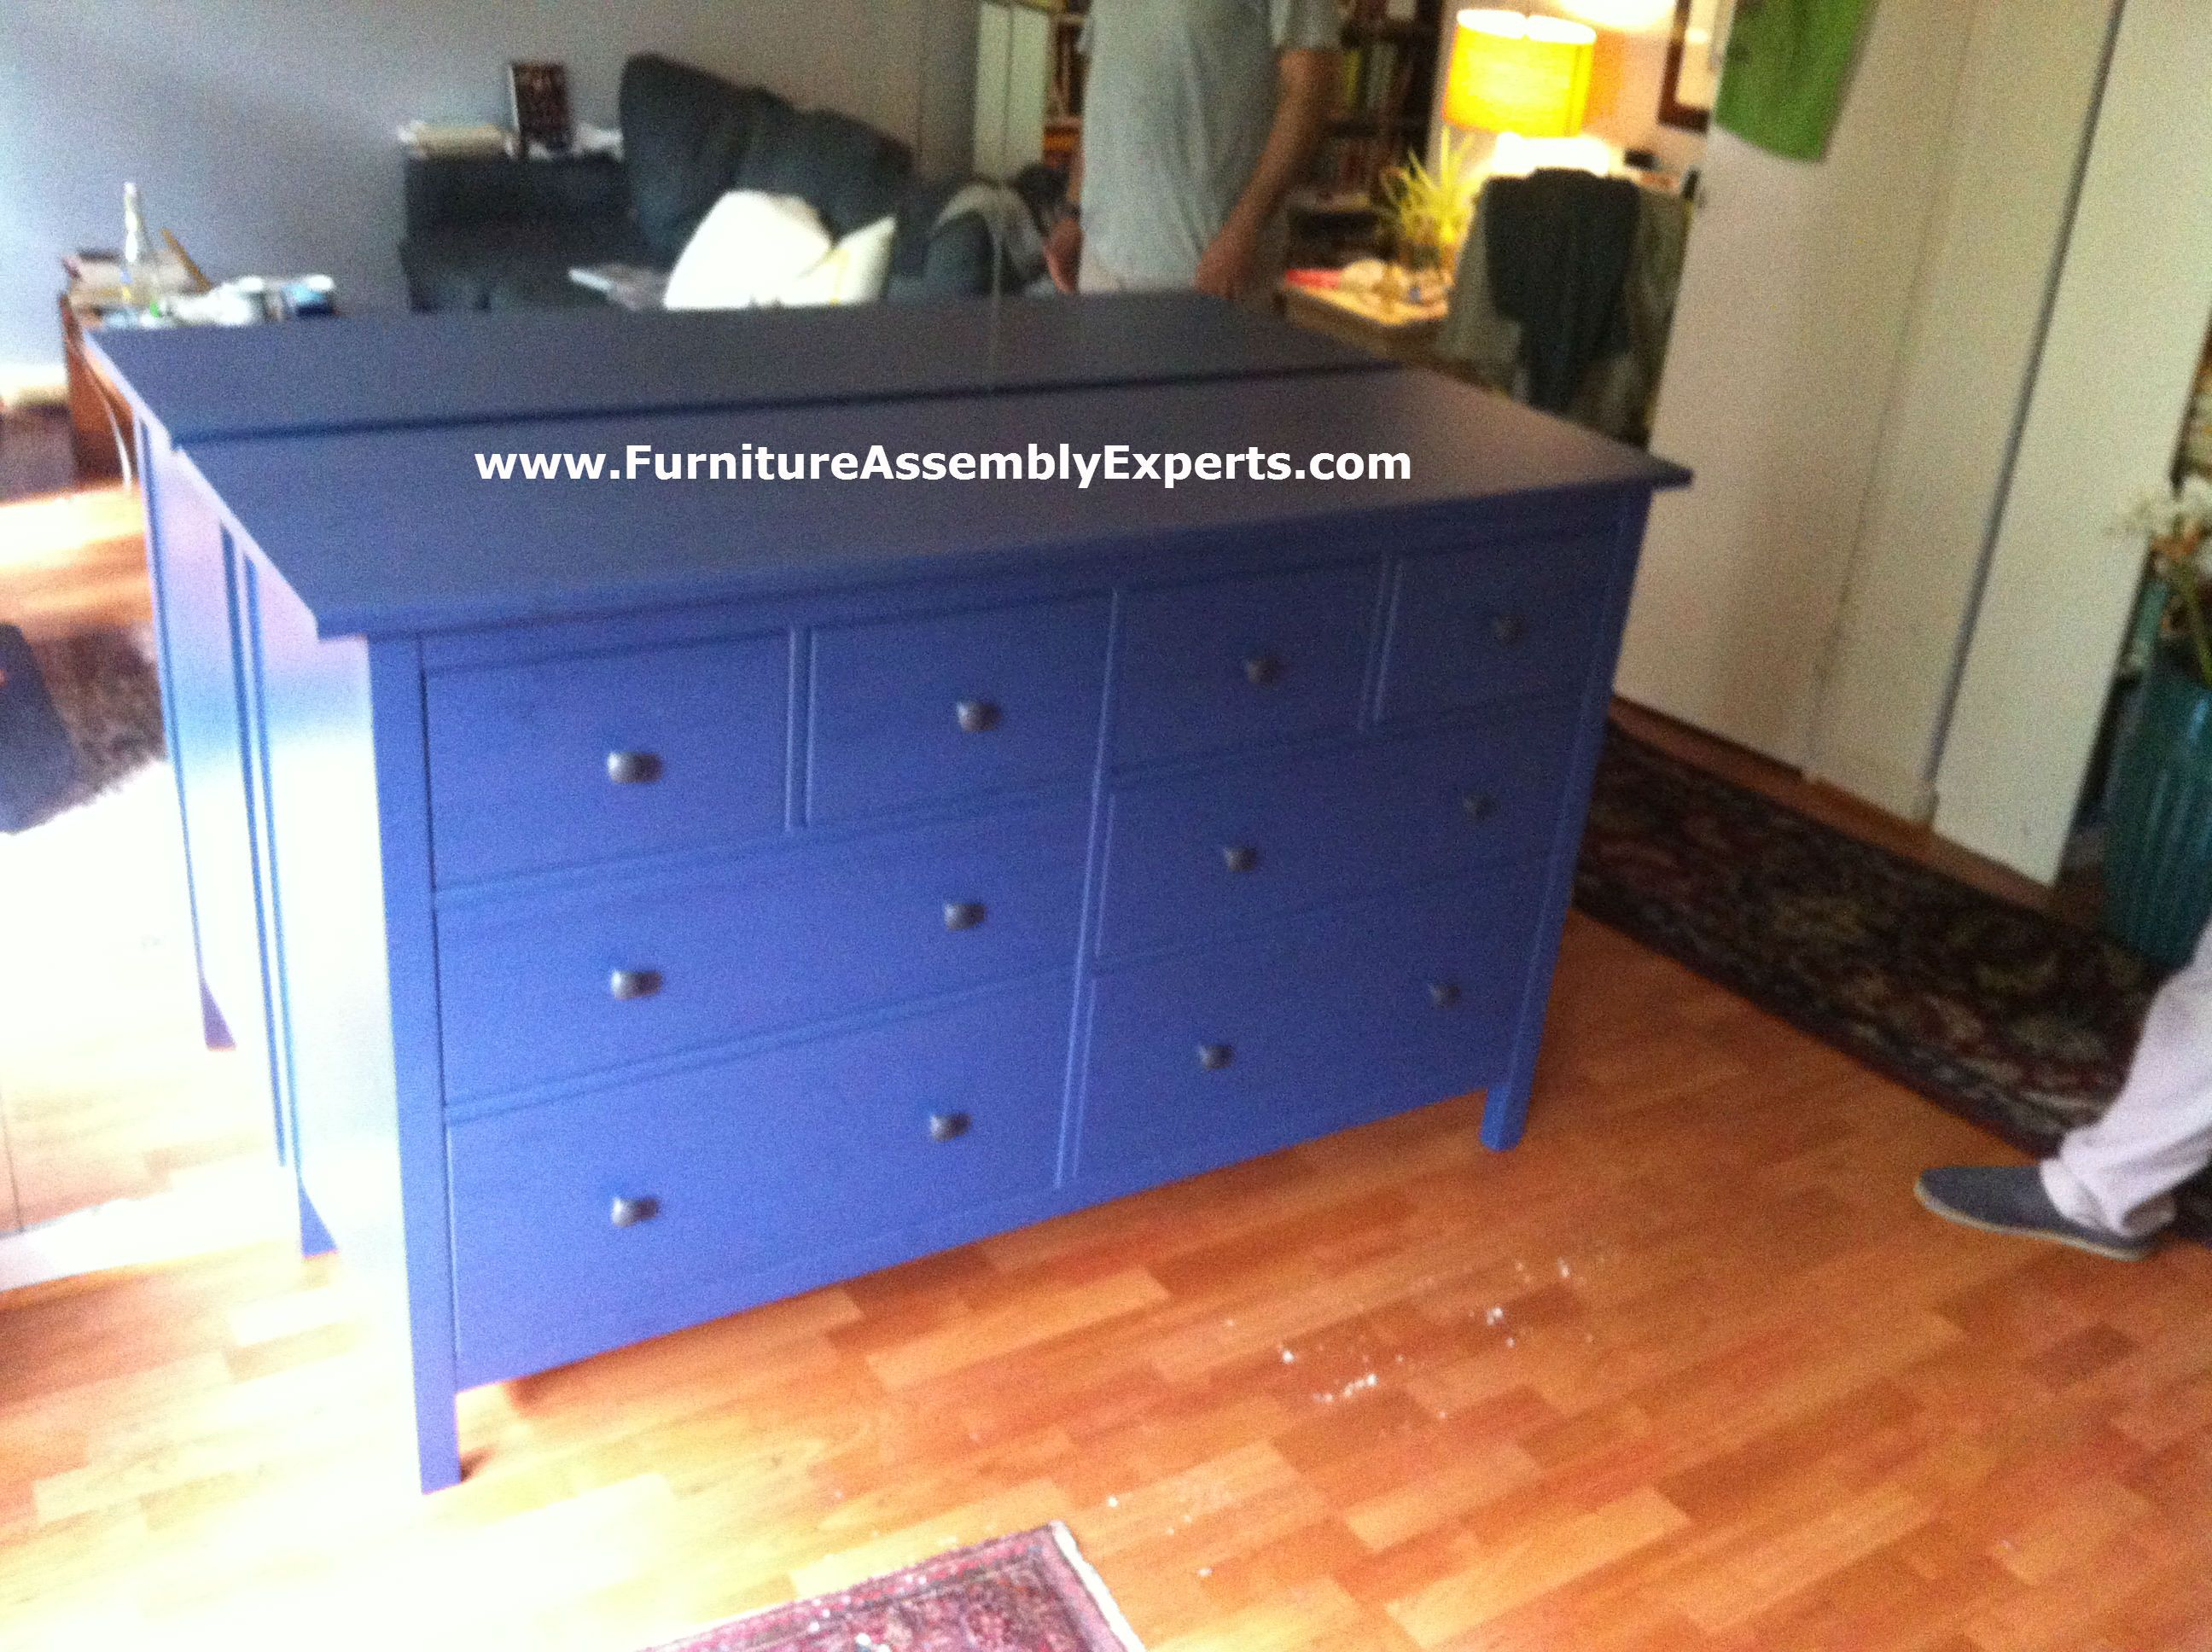 Ikea Hemnes 8 Drawers Dresser Embled In Reston Va By Furniture Embly Experts Llc Call